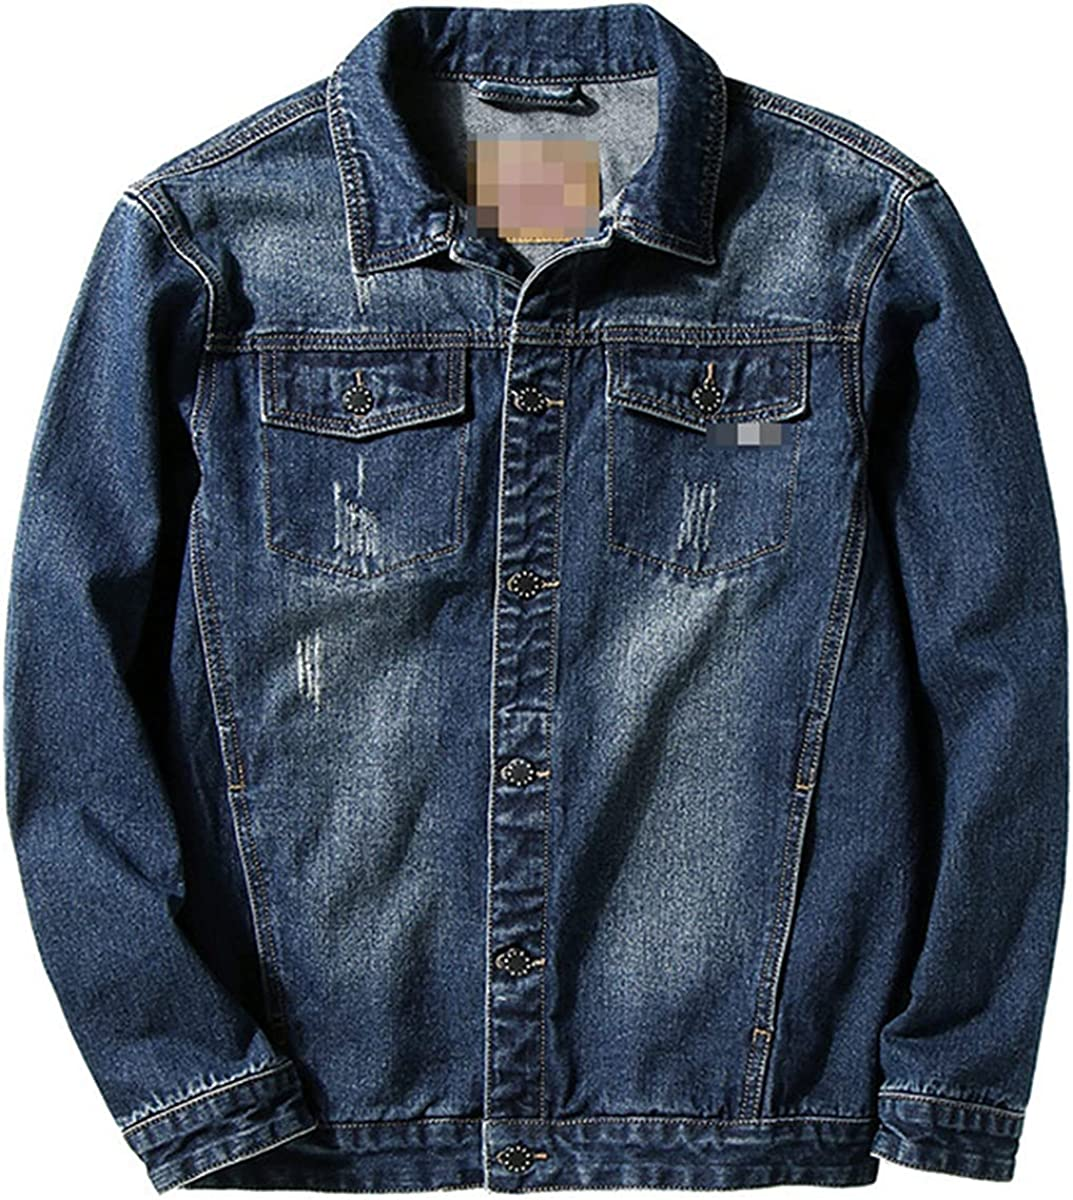 Denim Casual Jacket Spring And Summer Men's Clothing Design Large Asian Size